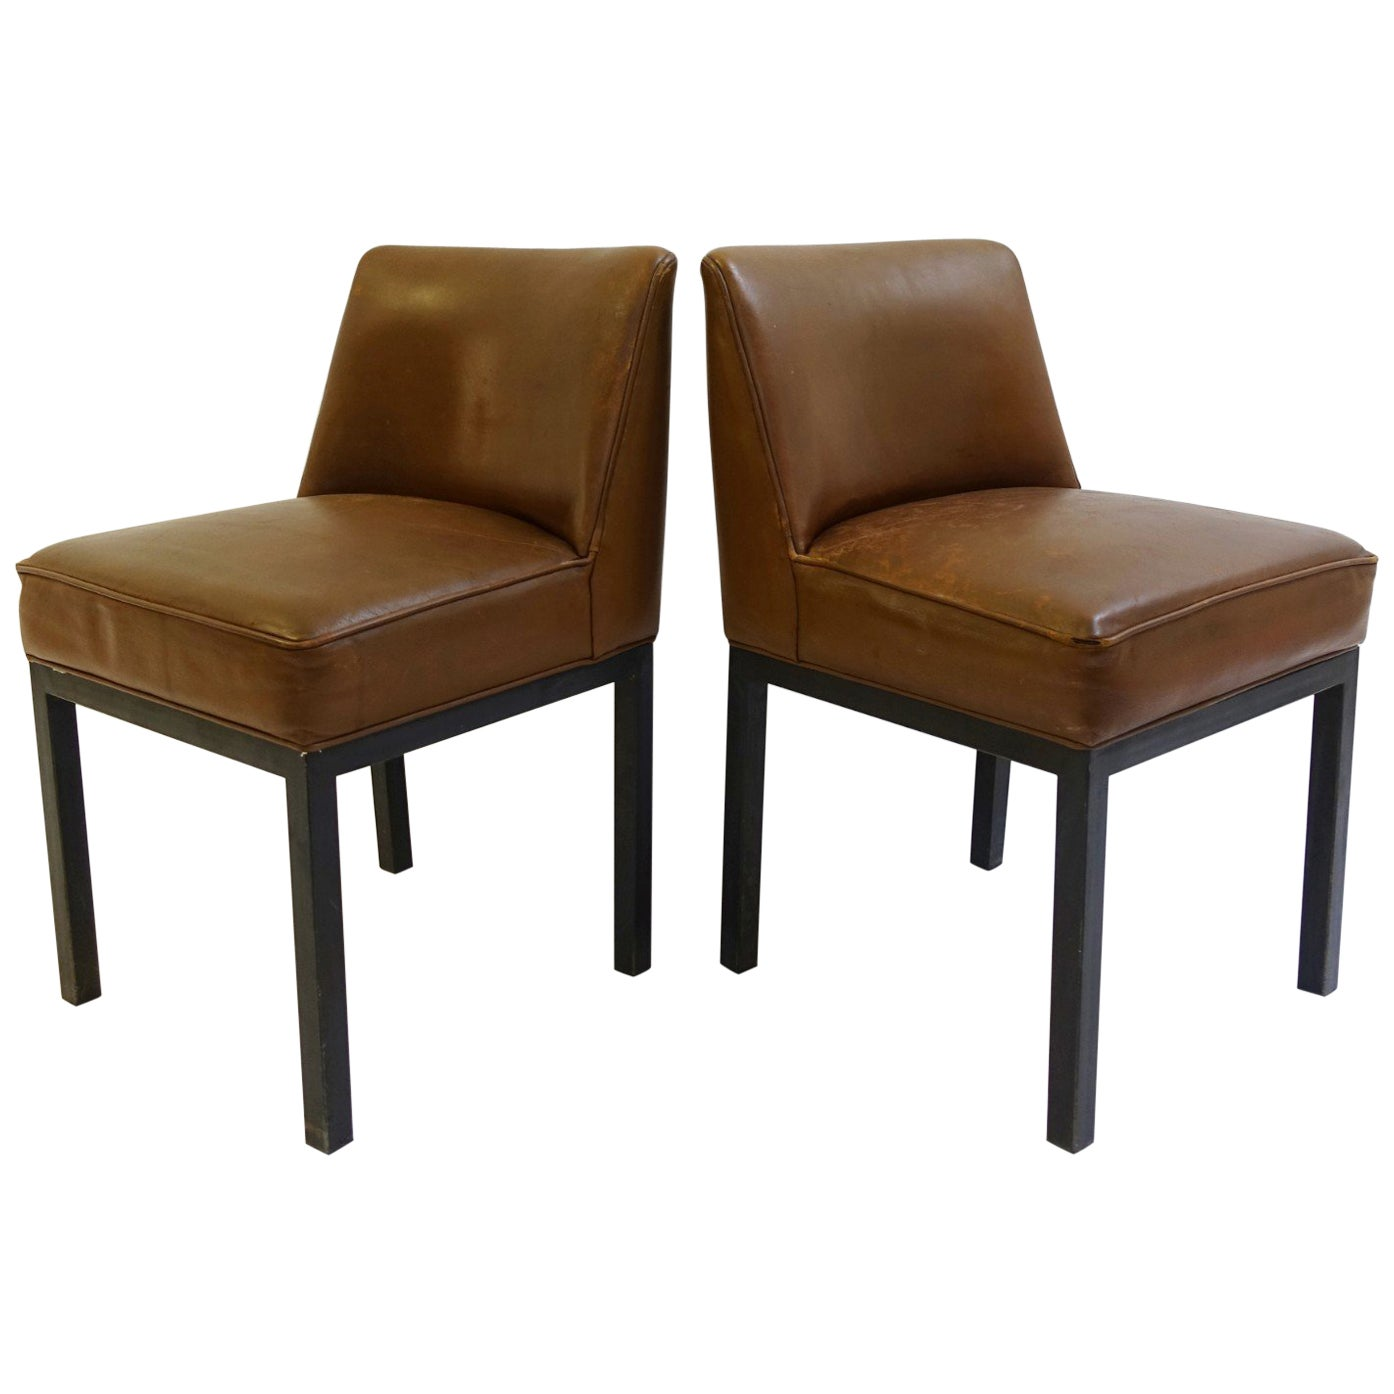 """Louise"" Chairs by Jules Wabbes for Mobilier Universel, 1960s, Set of 2"